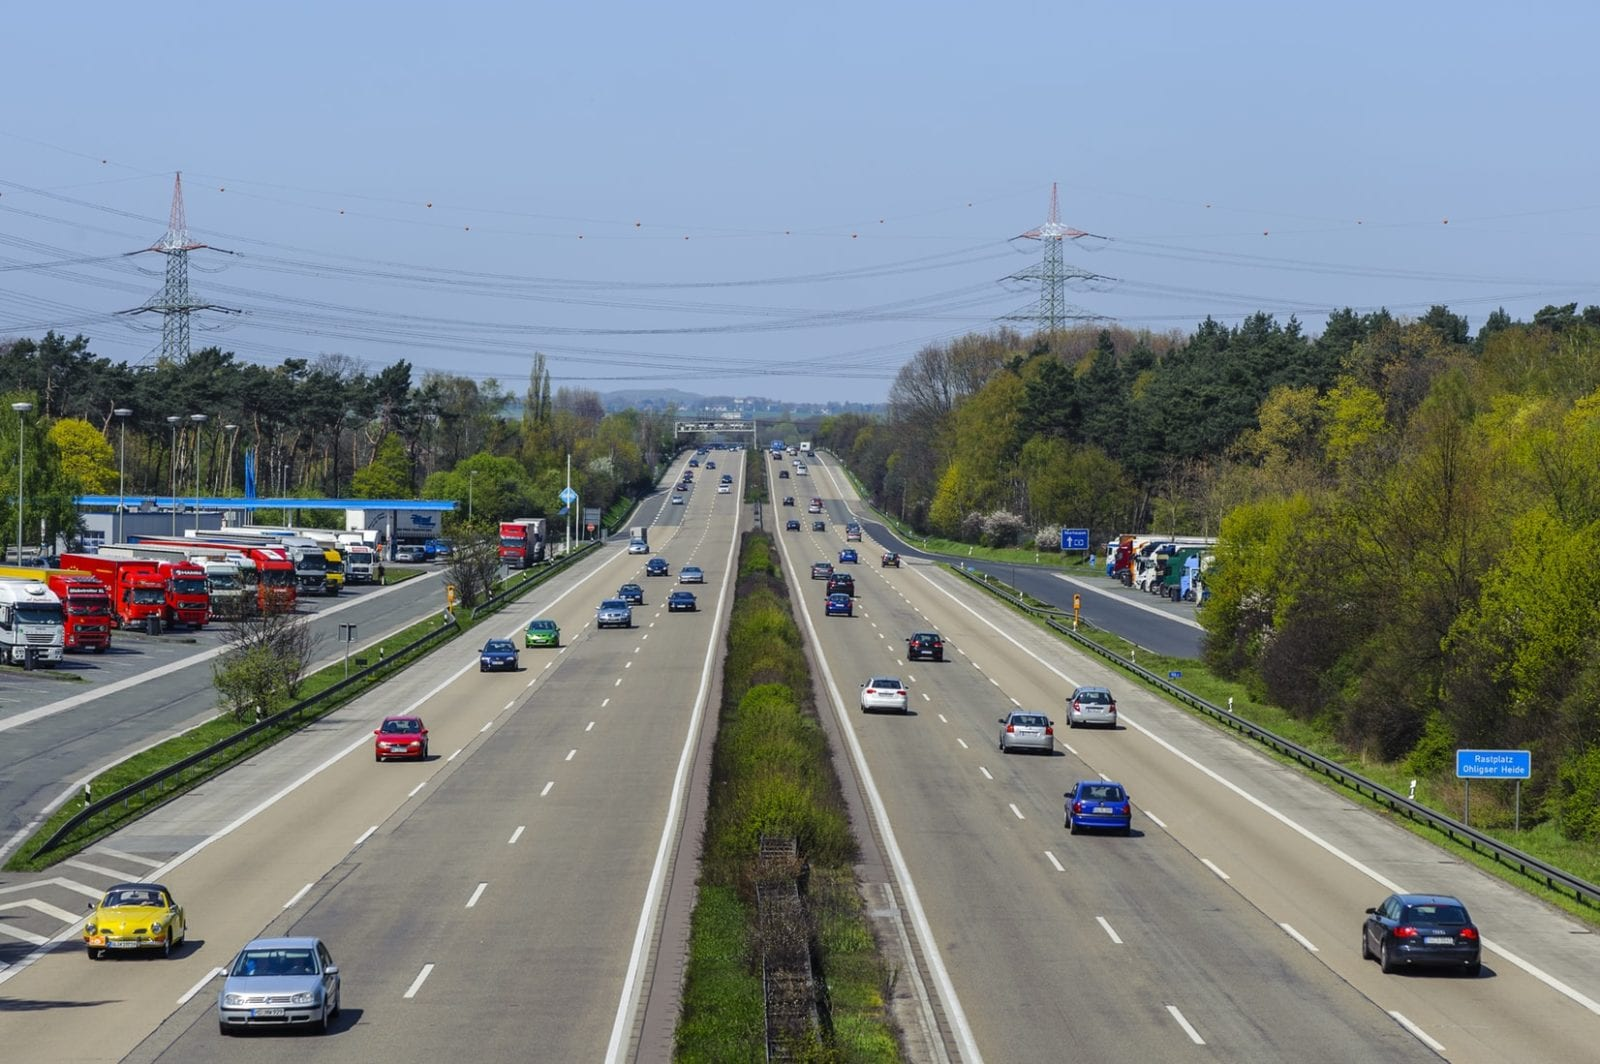 Aerial view of busy highway